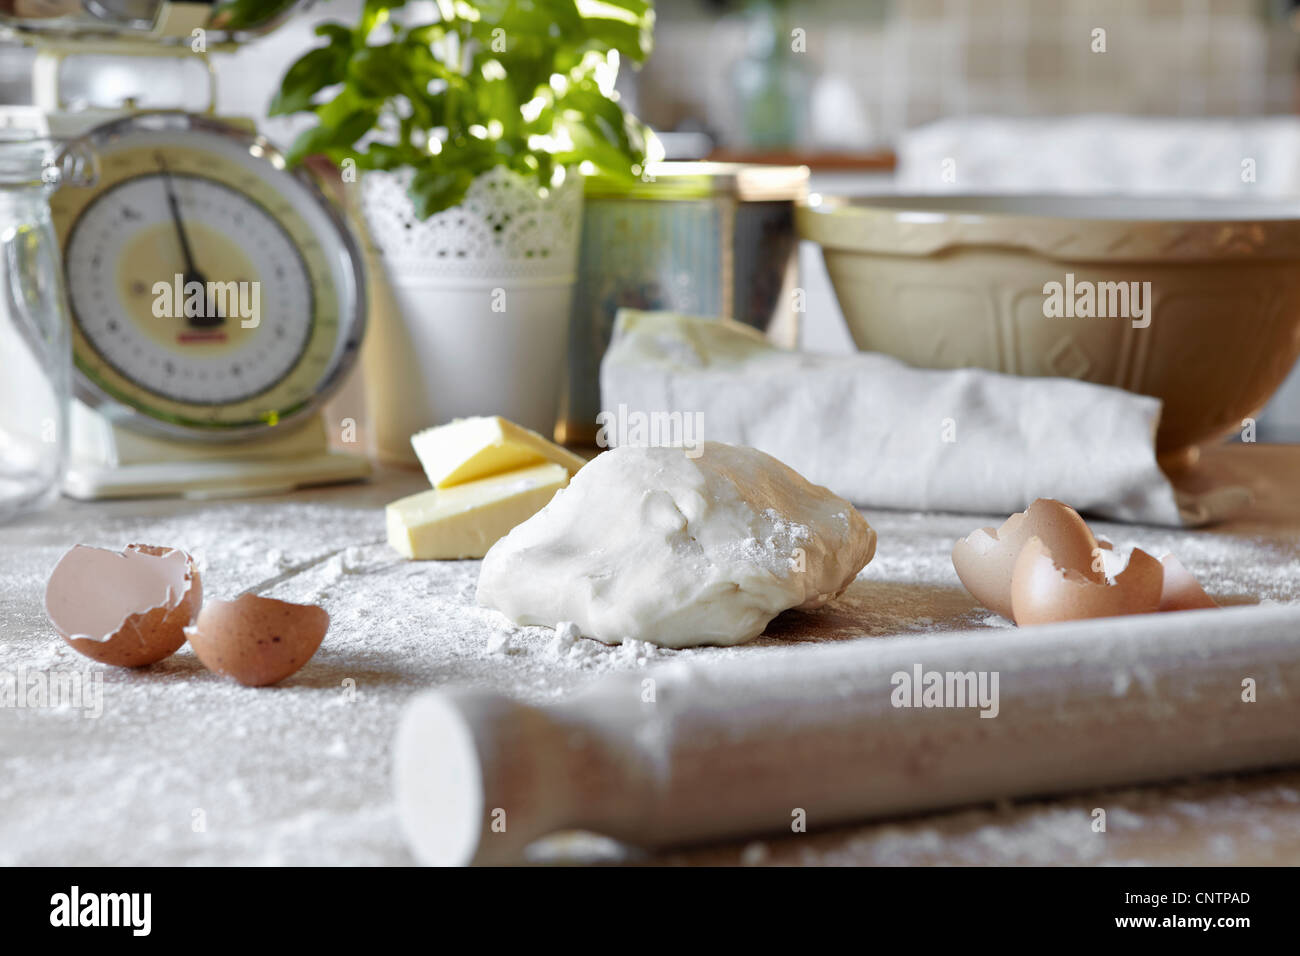 Pizza dough and eggs in messy kitchen - Stock Image